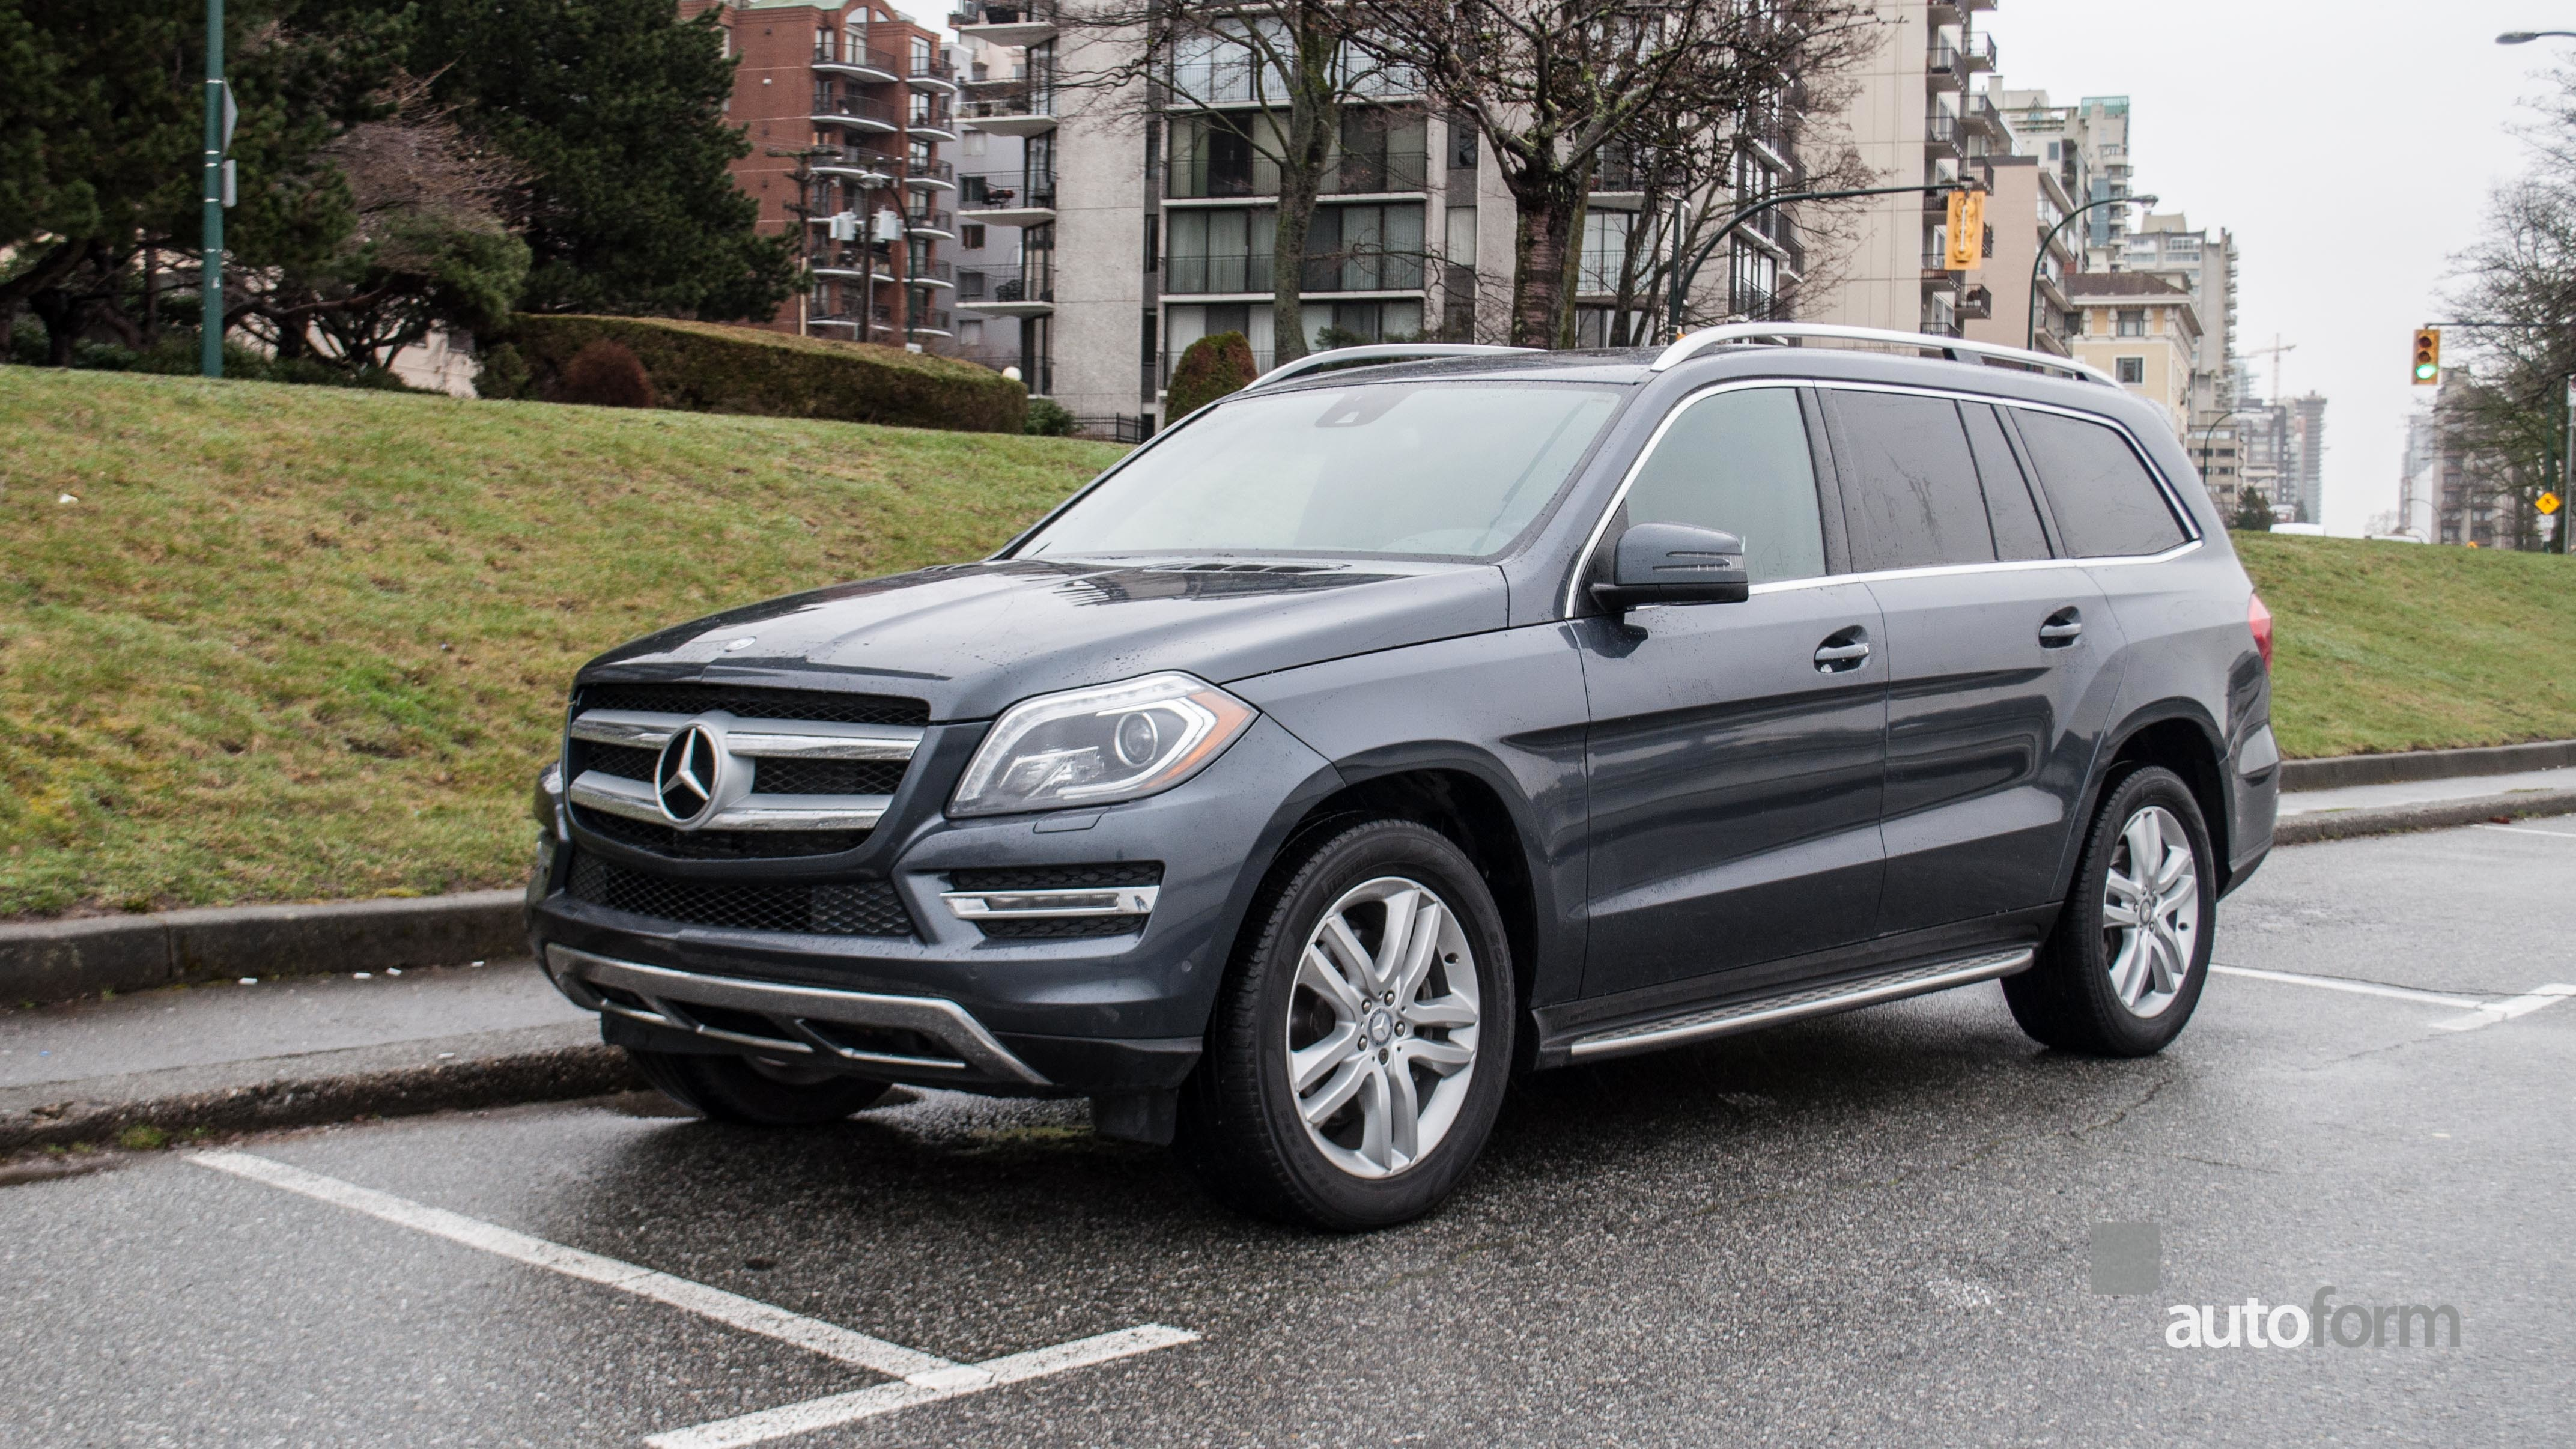 2014 mercedes benz gl350 bluetec autoform for Mercedes benz s 350 bluetec